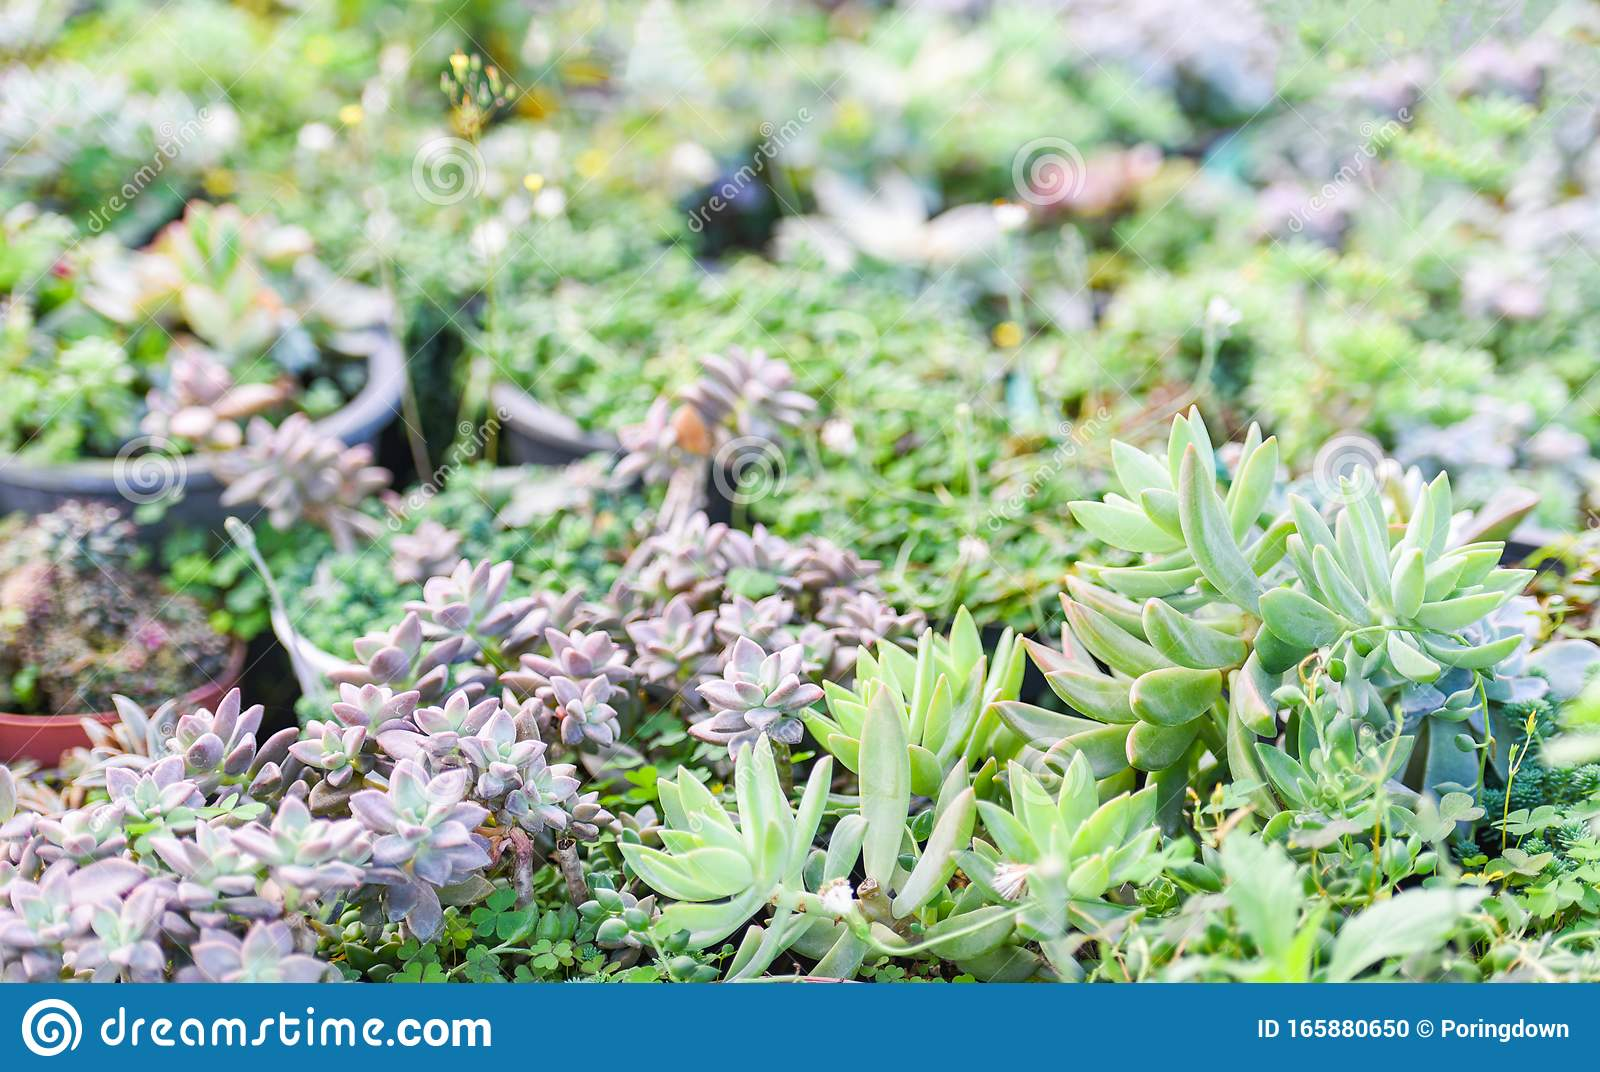 Miniature Succulent Plants Decorate In The Garden Various Types